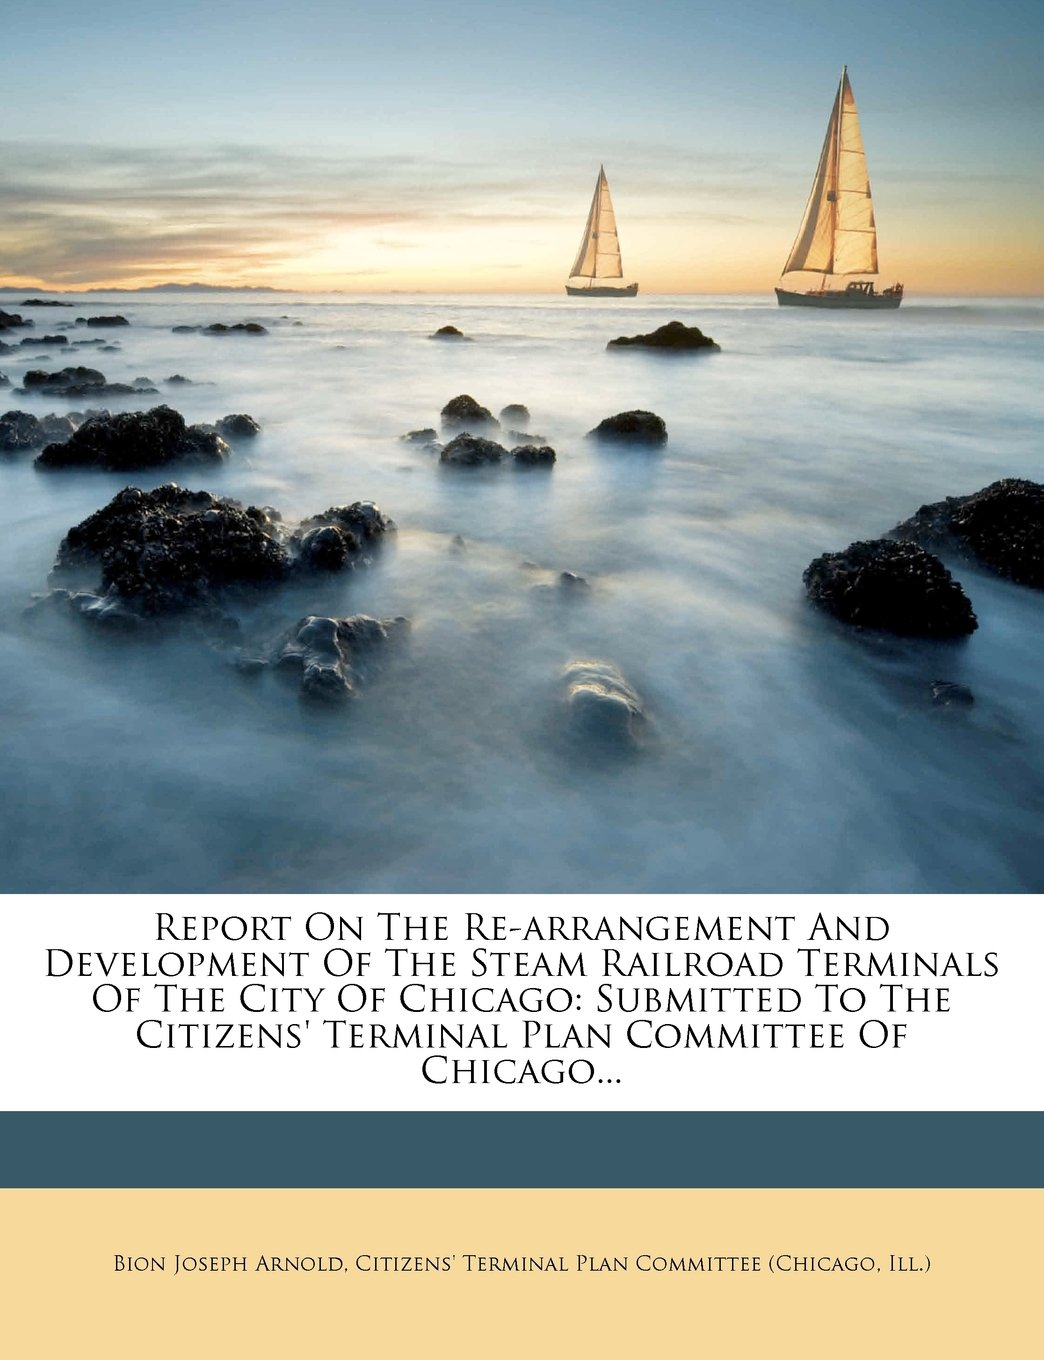 Report On The Re-arrangement And Development Of The Steam Railroad Terminals Of The City Of Chicago: Submitted To The Citizens' Terminal Plan Committee Of Chicago... PDF